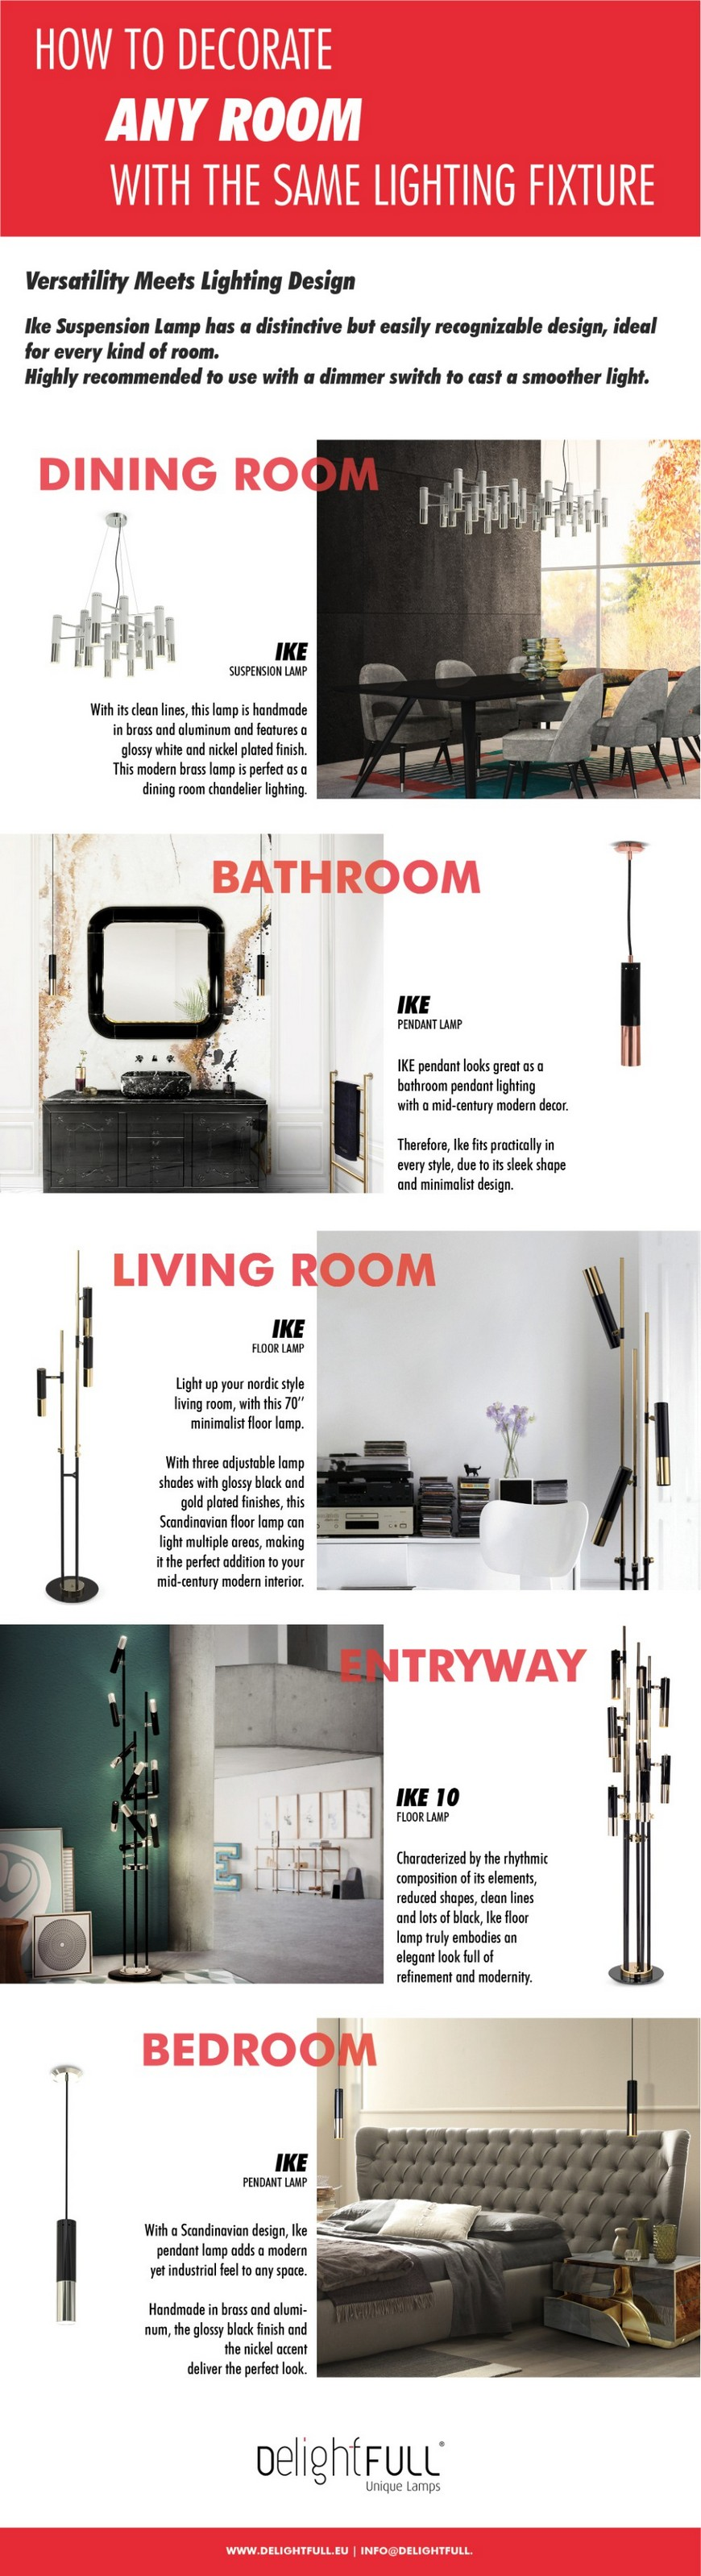 Interior Design Tips on How to Decorate a Home with a Single Lamp 8